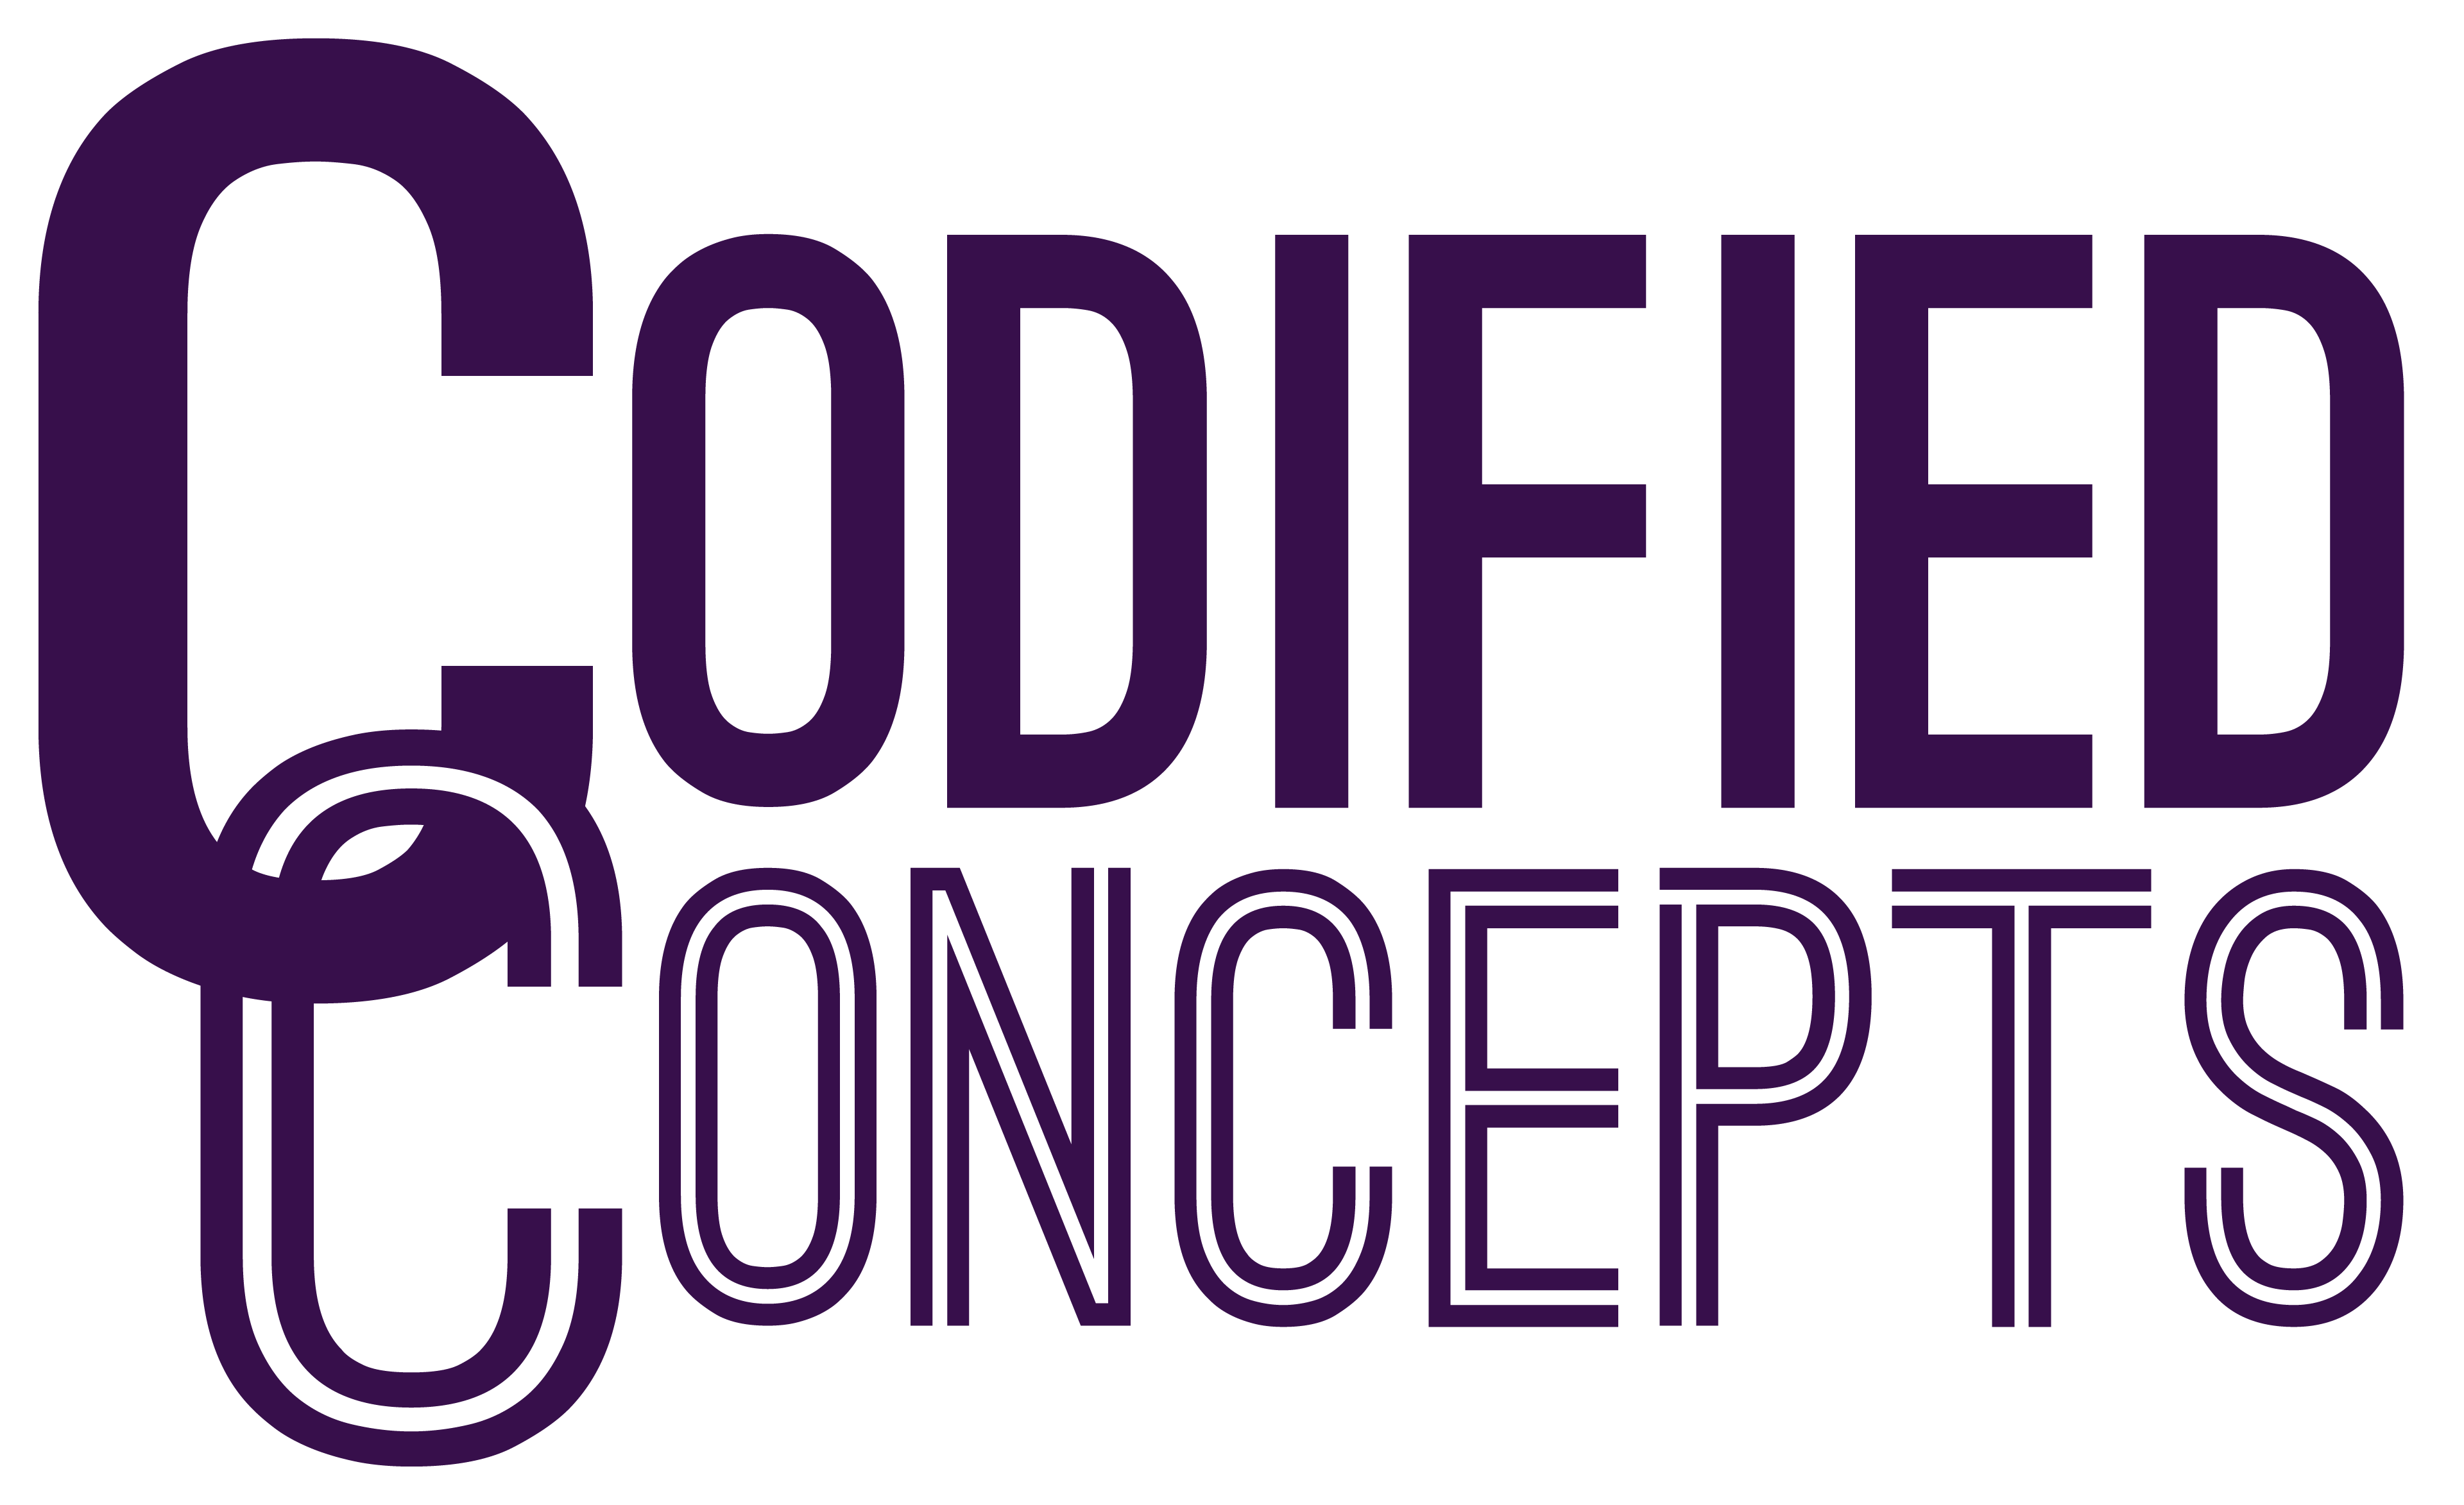 Codified Concepts